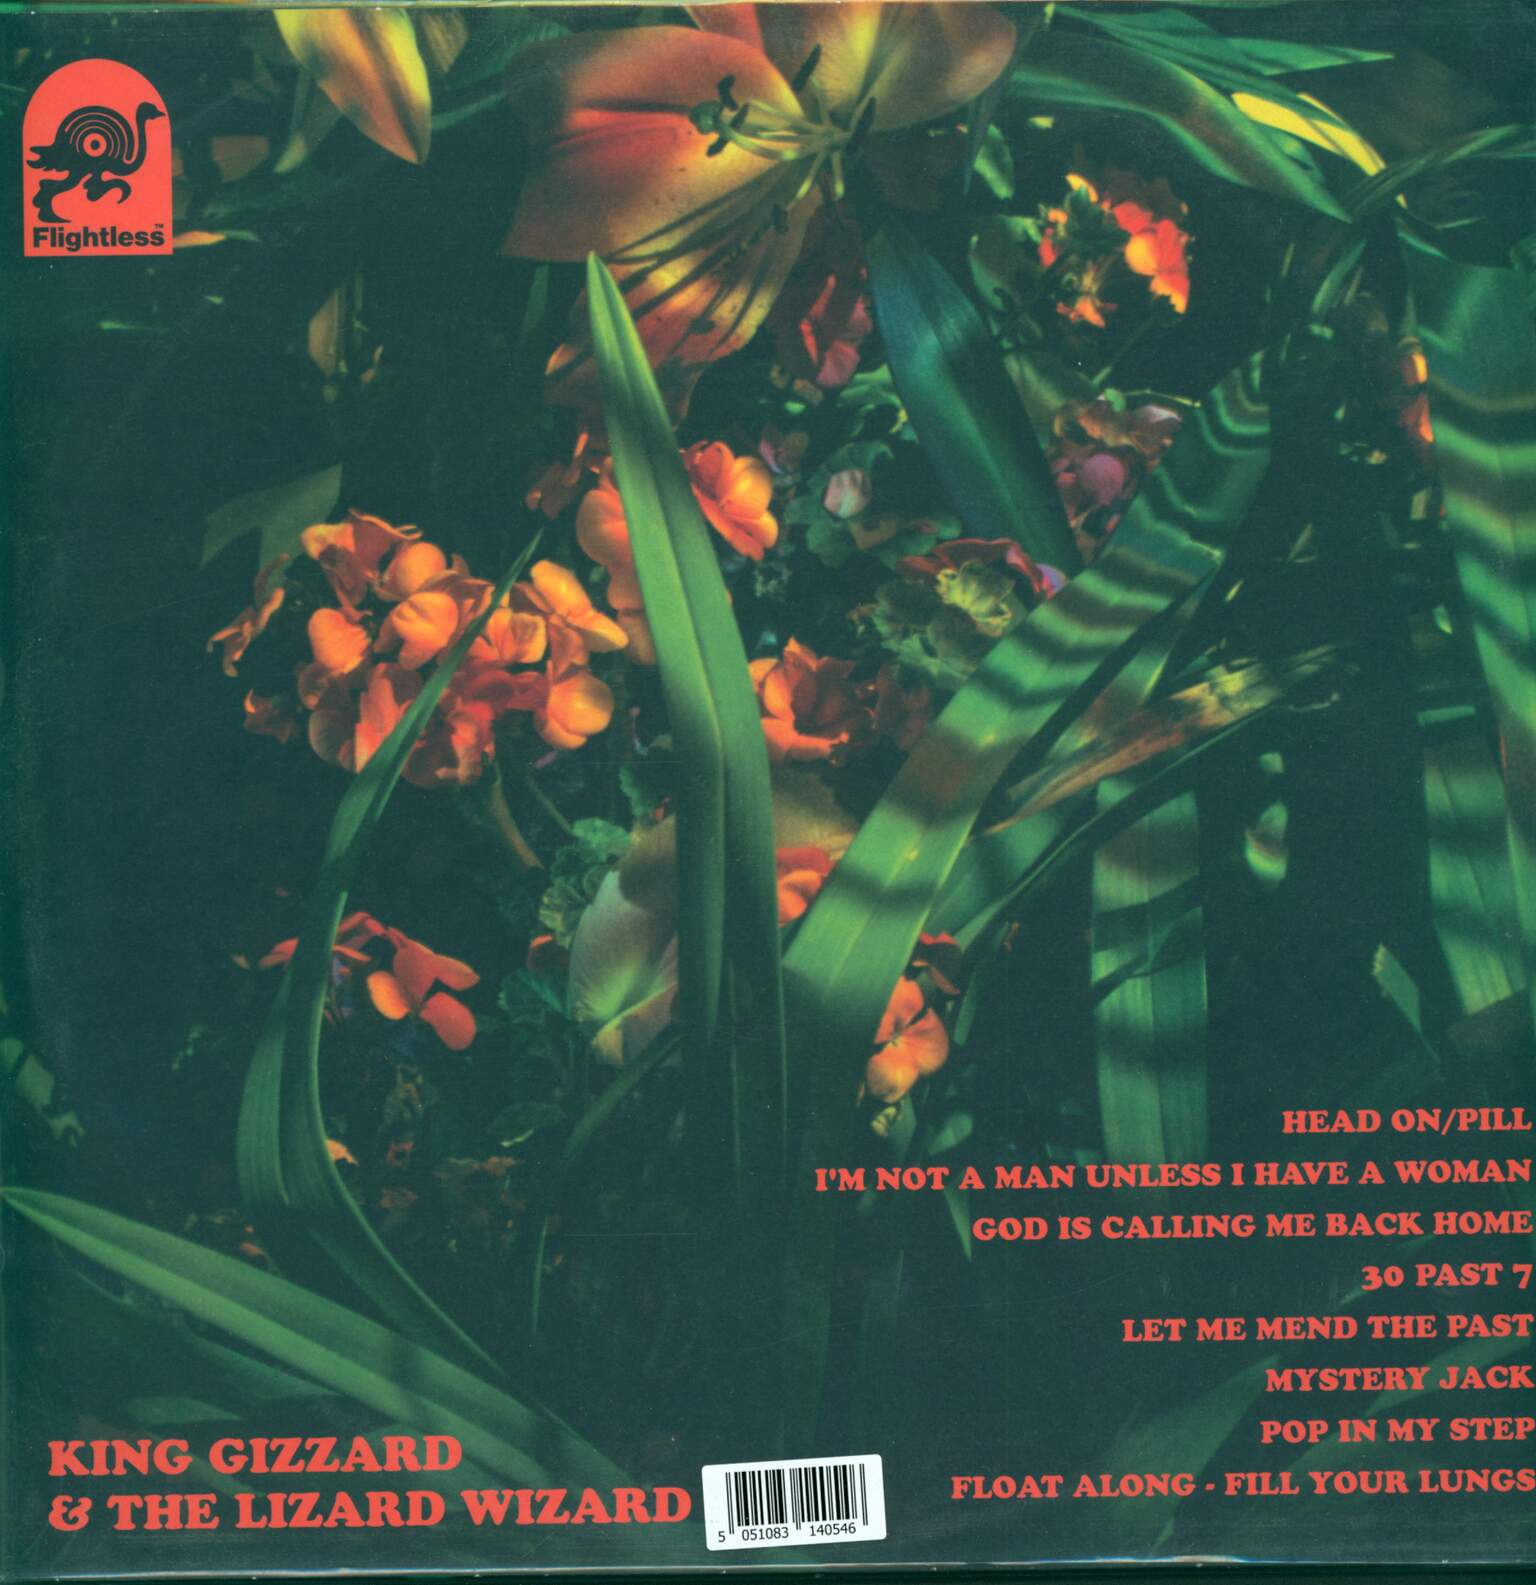 King Gizzard And The Lizard Wizard: Float Along - Fill Your Lungs, 1×LP (Vinyl)